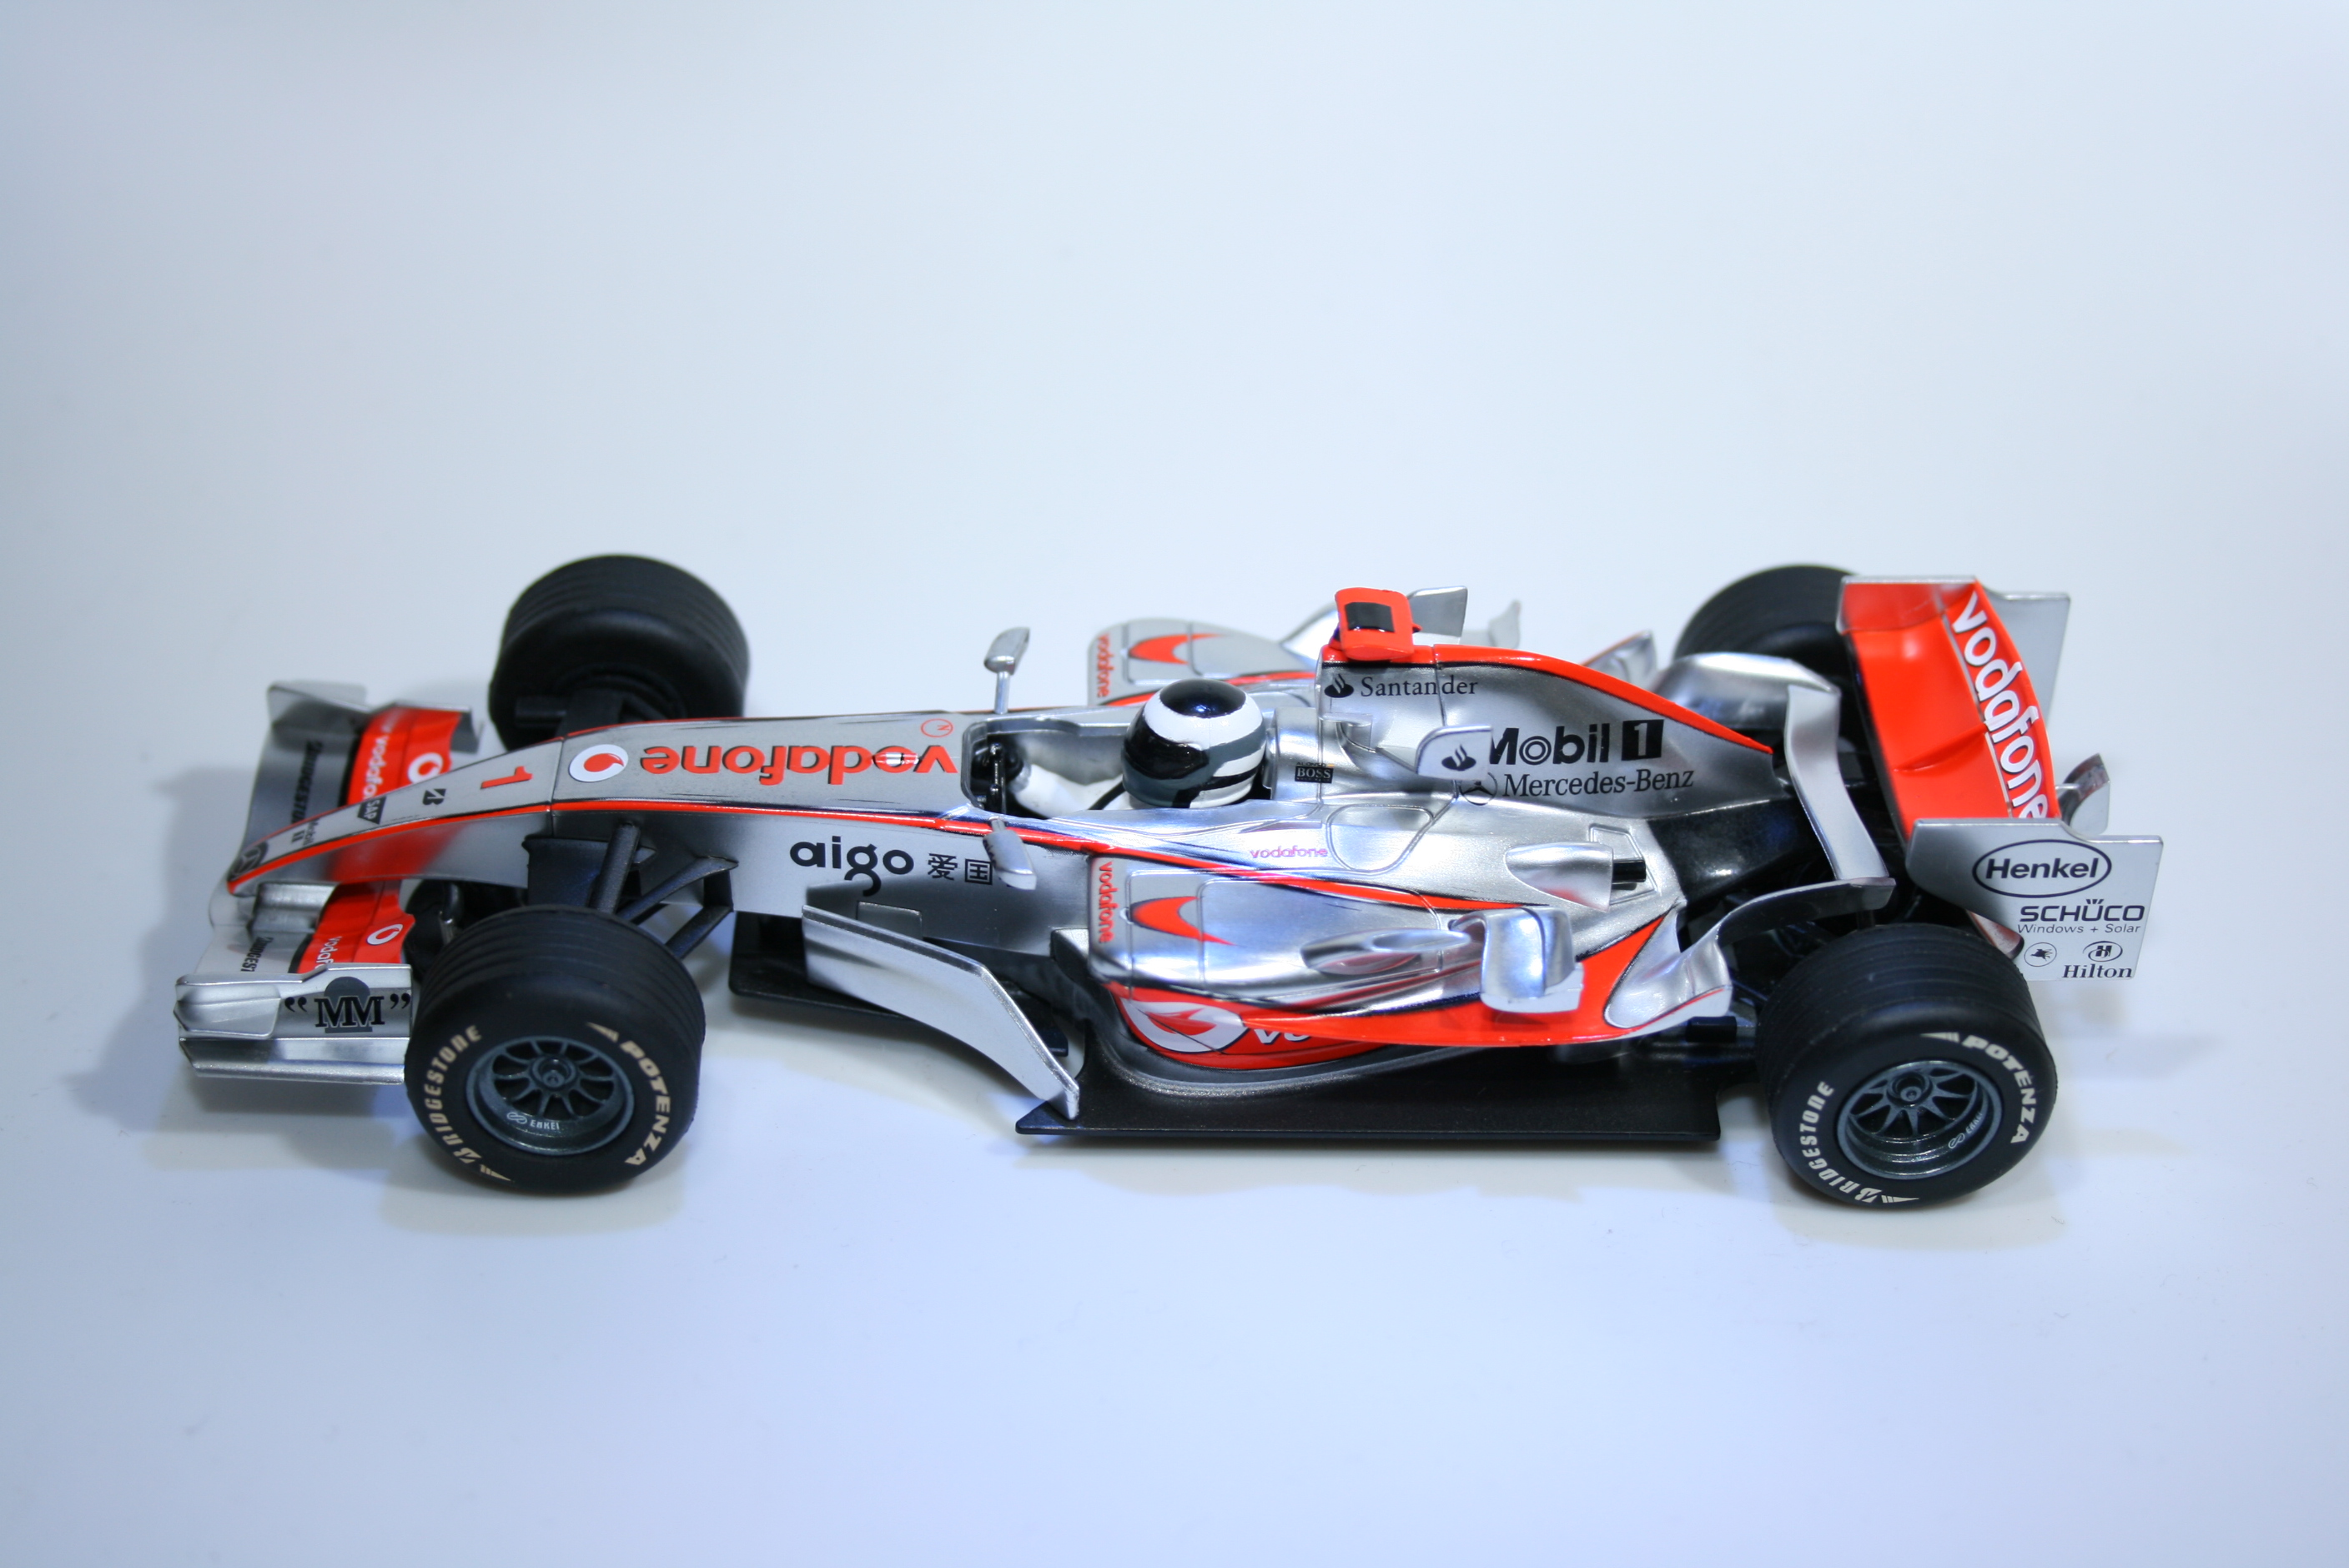 331 Mclaren MP4/22 2007 F Alonso Scalextric C2806 2007 Boxed